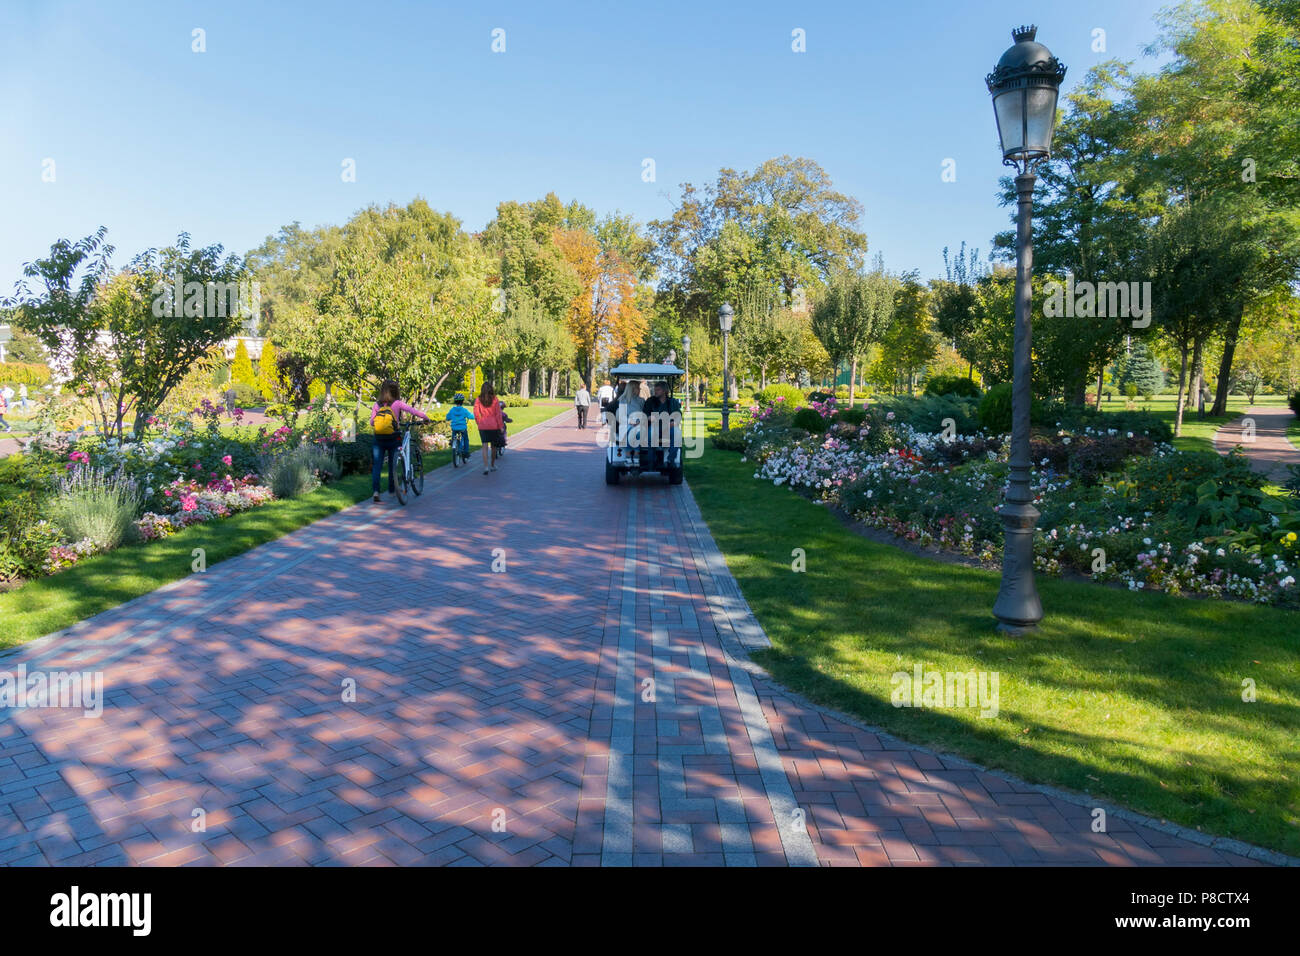 Wide Avenue Stock Photos & Wide Avenue Stock Images - Alamy